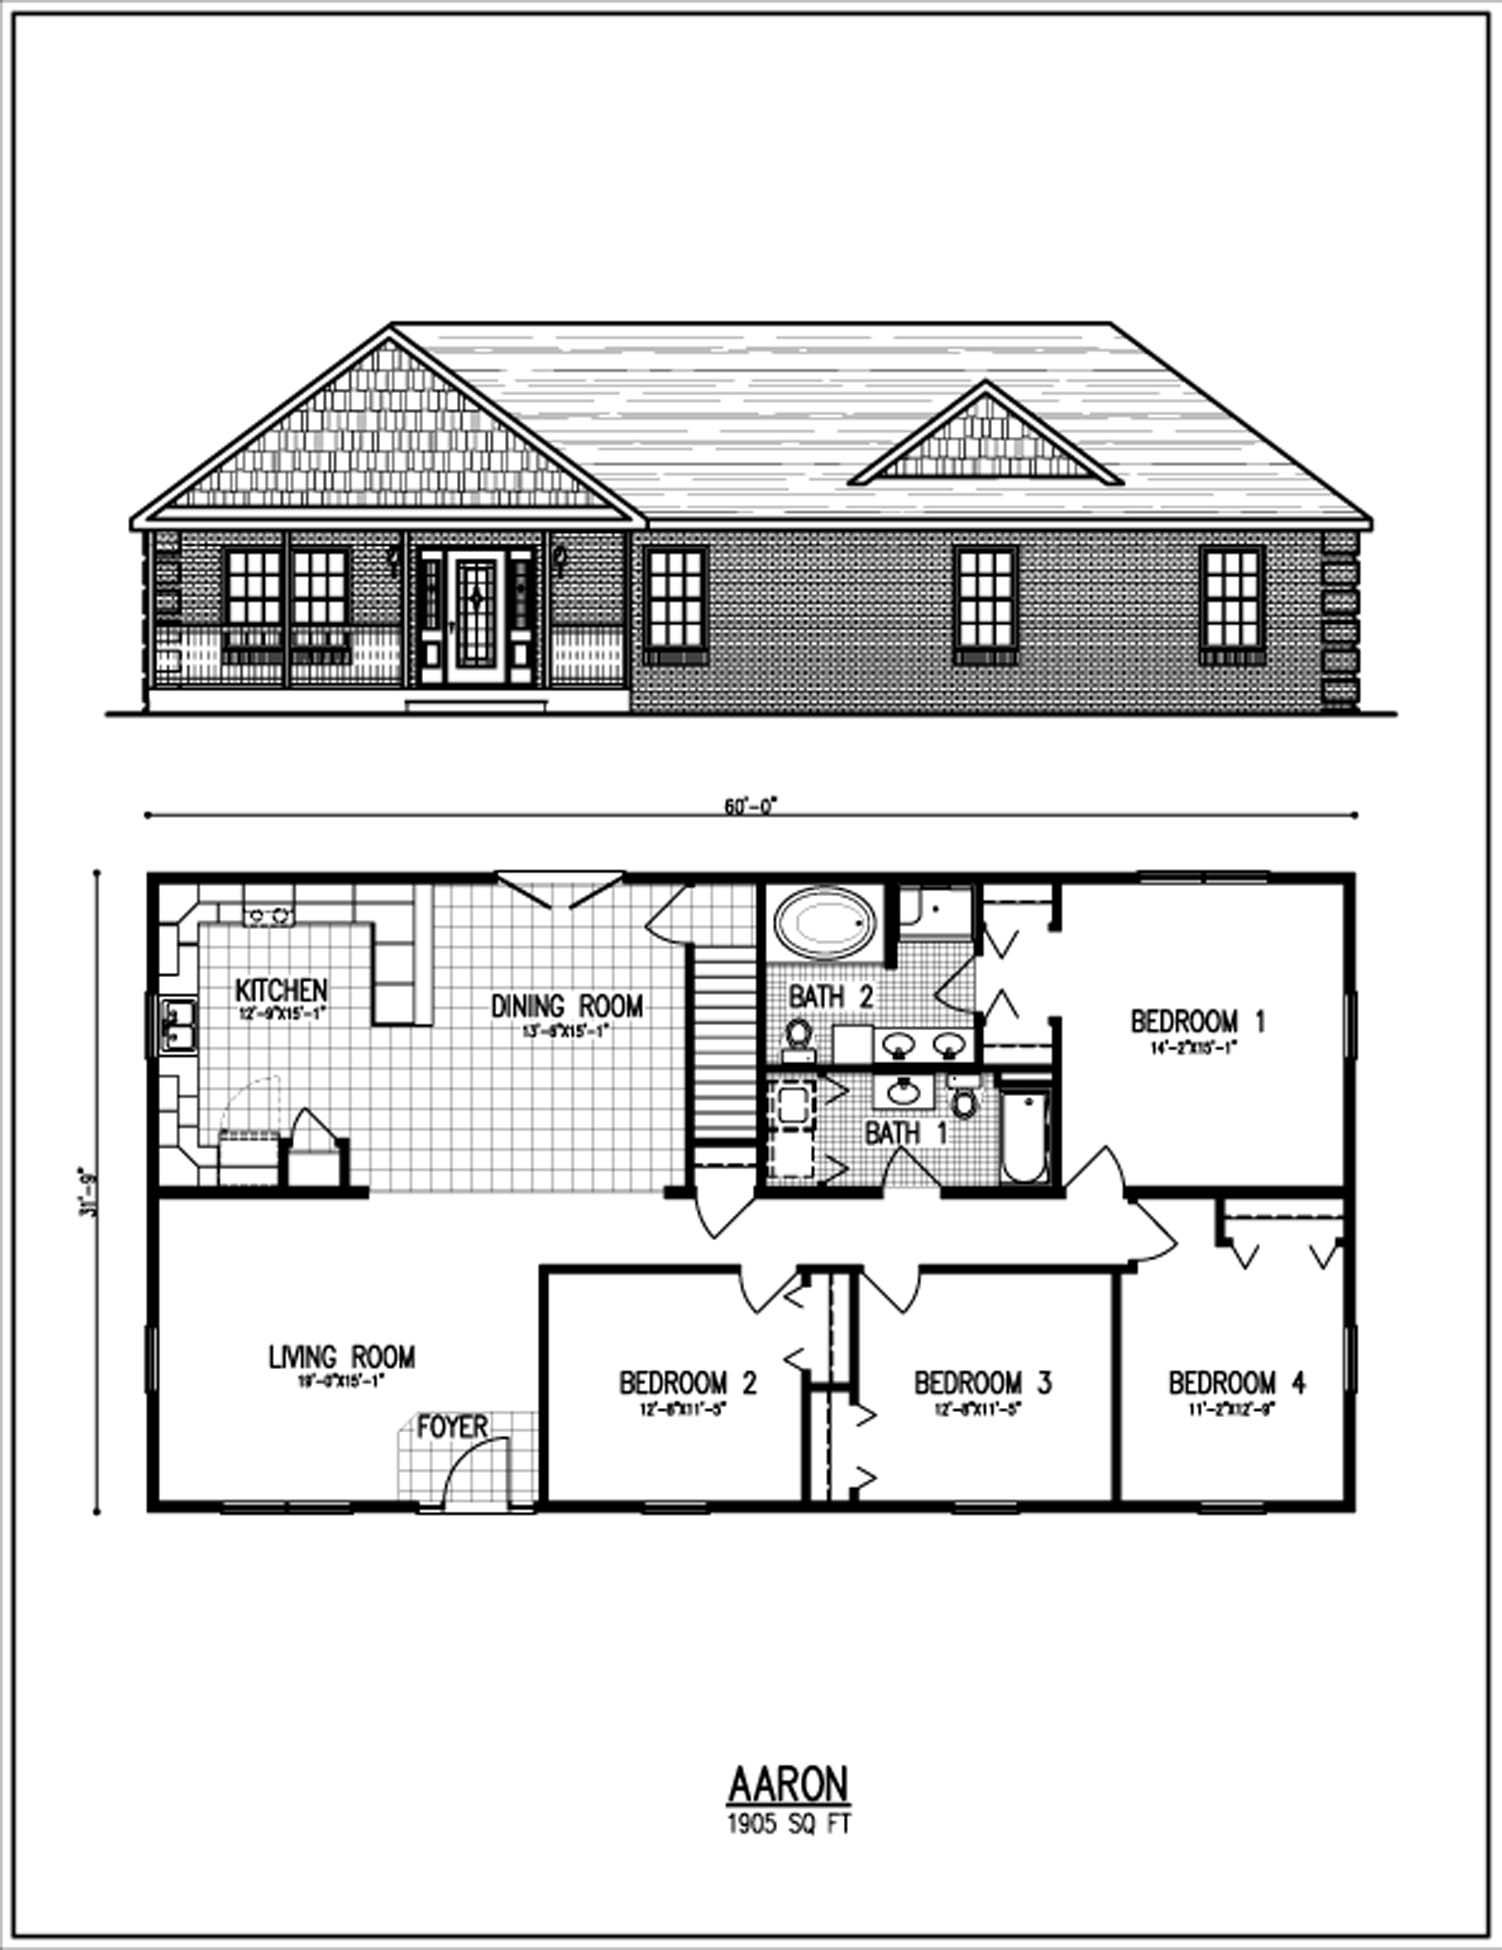 All american homes floorplan center staffordcape Ranch floorplans